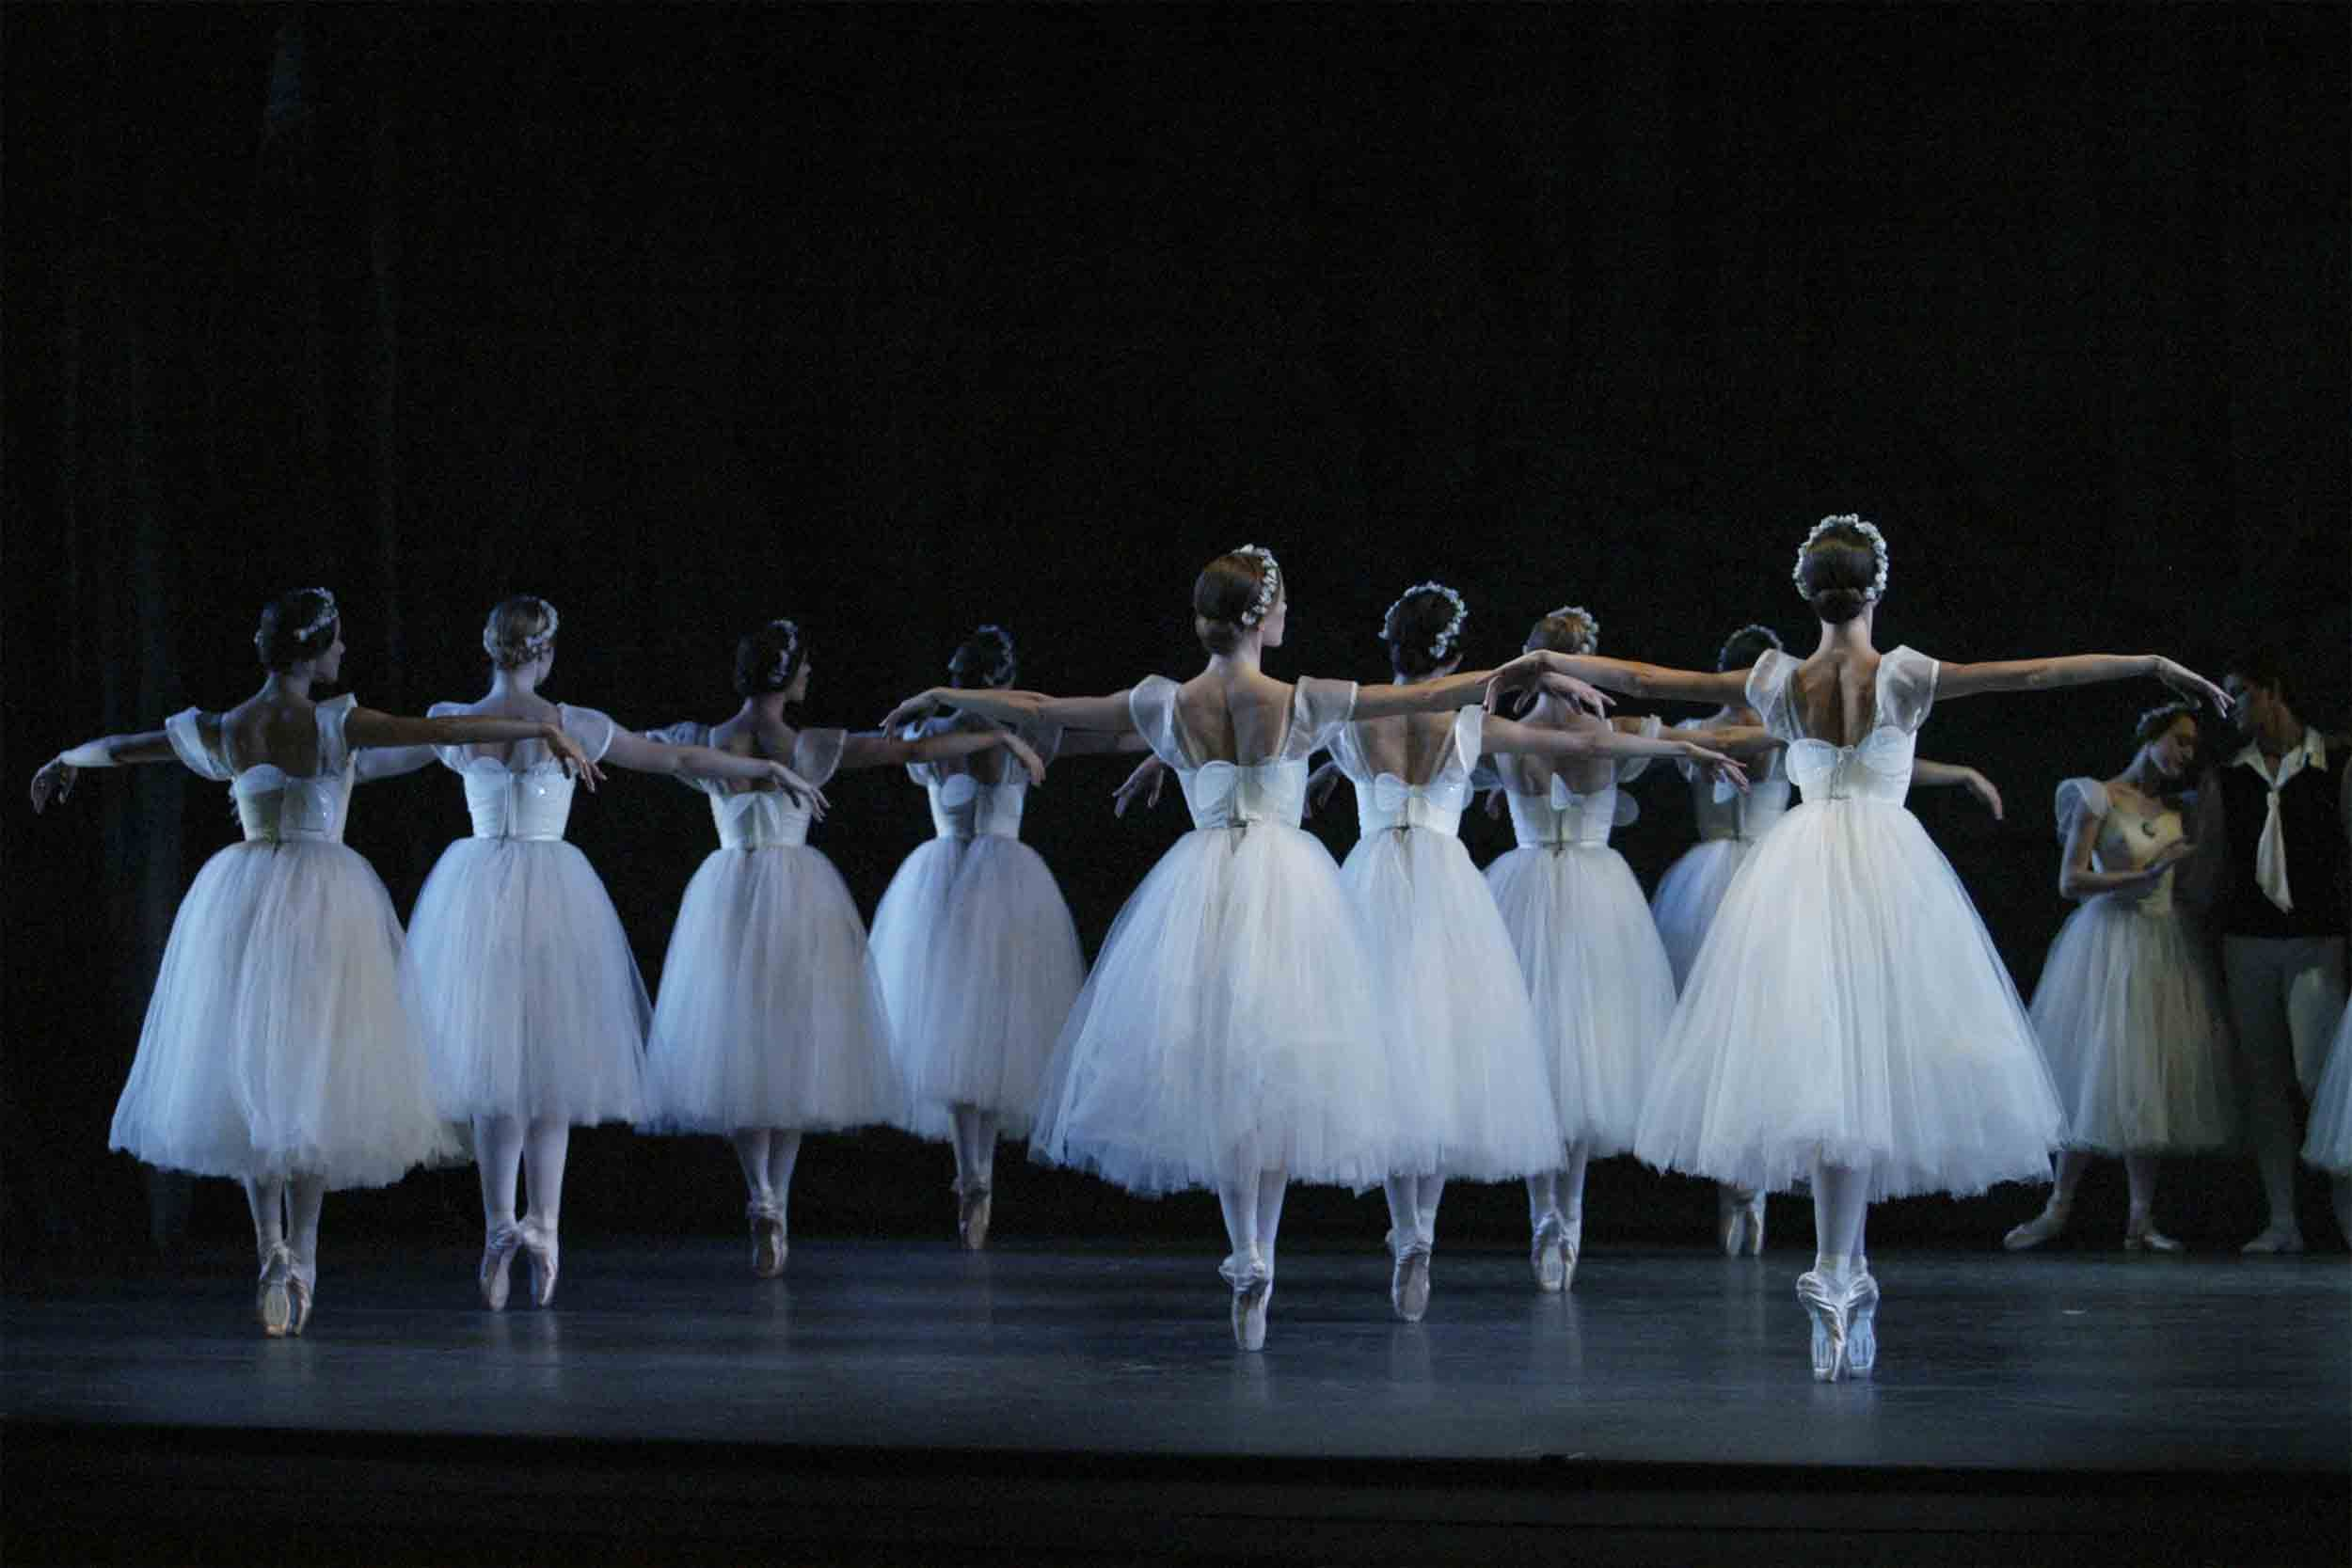 ABT in Les Sylphides. Photo Rosalie O'Connor ©. Picture Source: [Artsjournal.com]